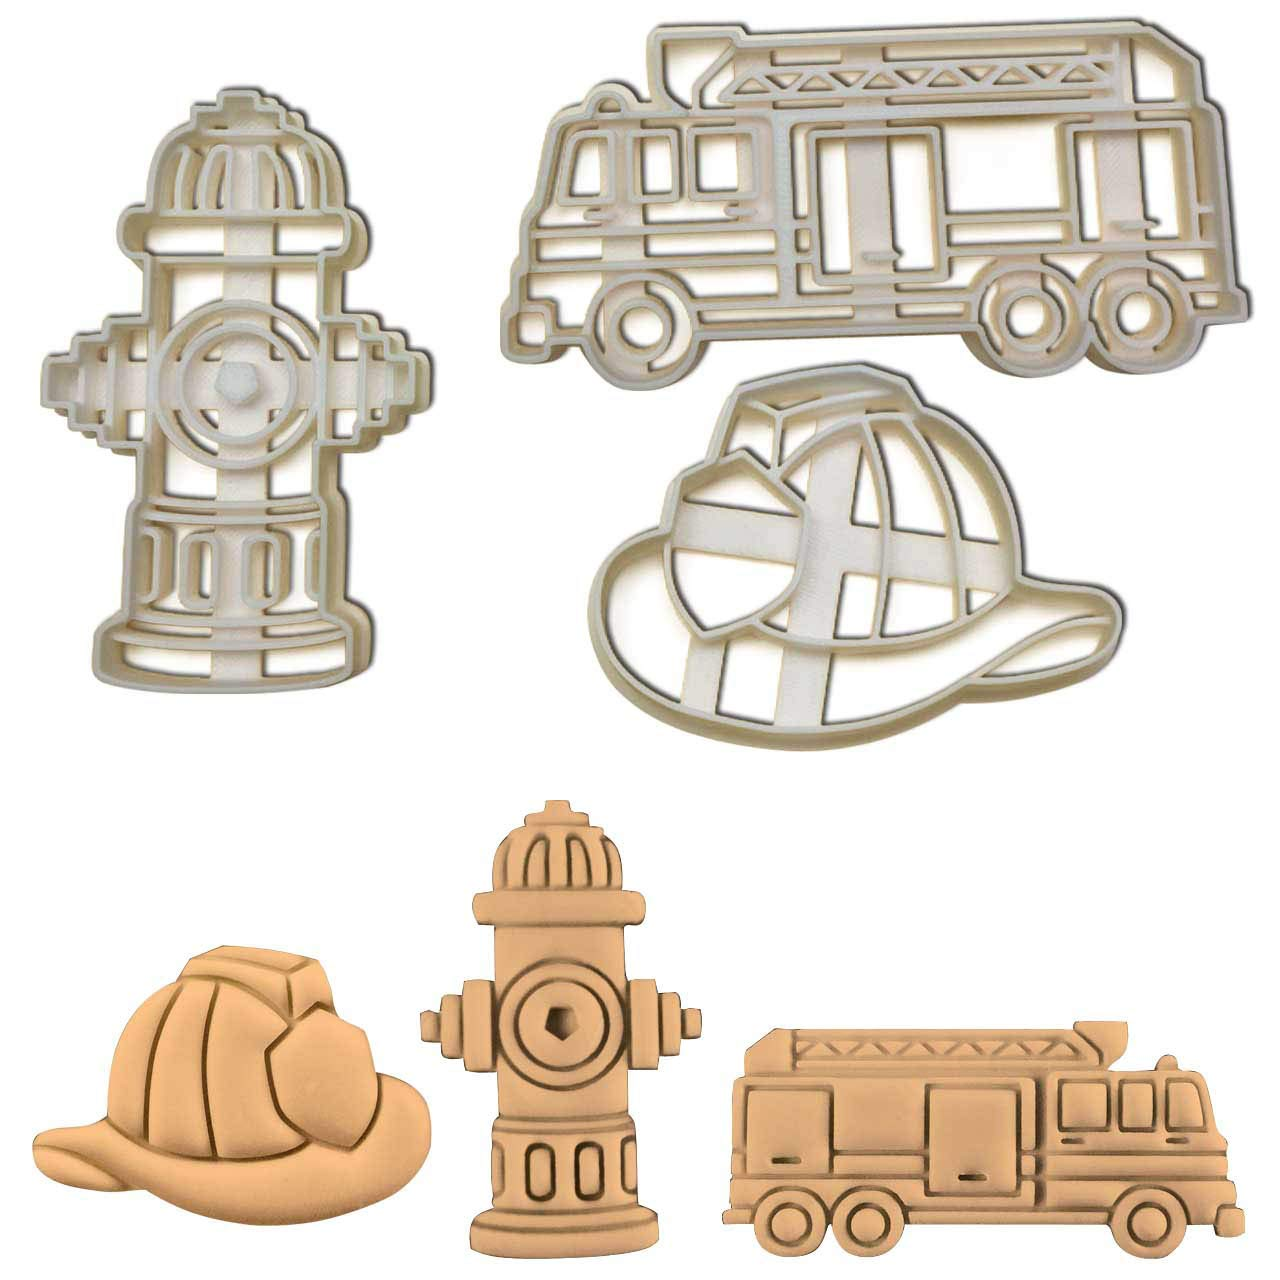 Set of 3 Fireman themed cookie cutters (Designs: Fire Truck, Fire Hydrant, and Fire Helmet), 3 pieces - Bakerlogy